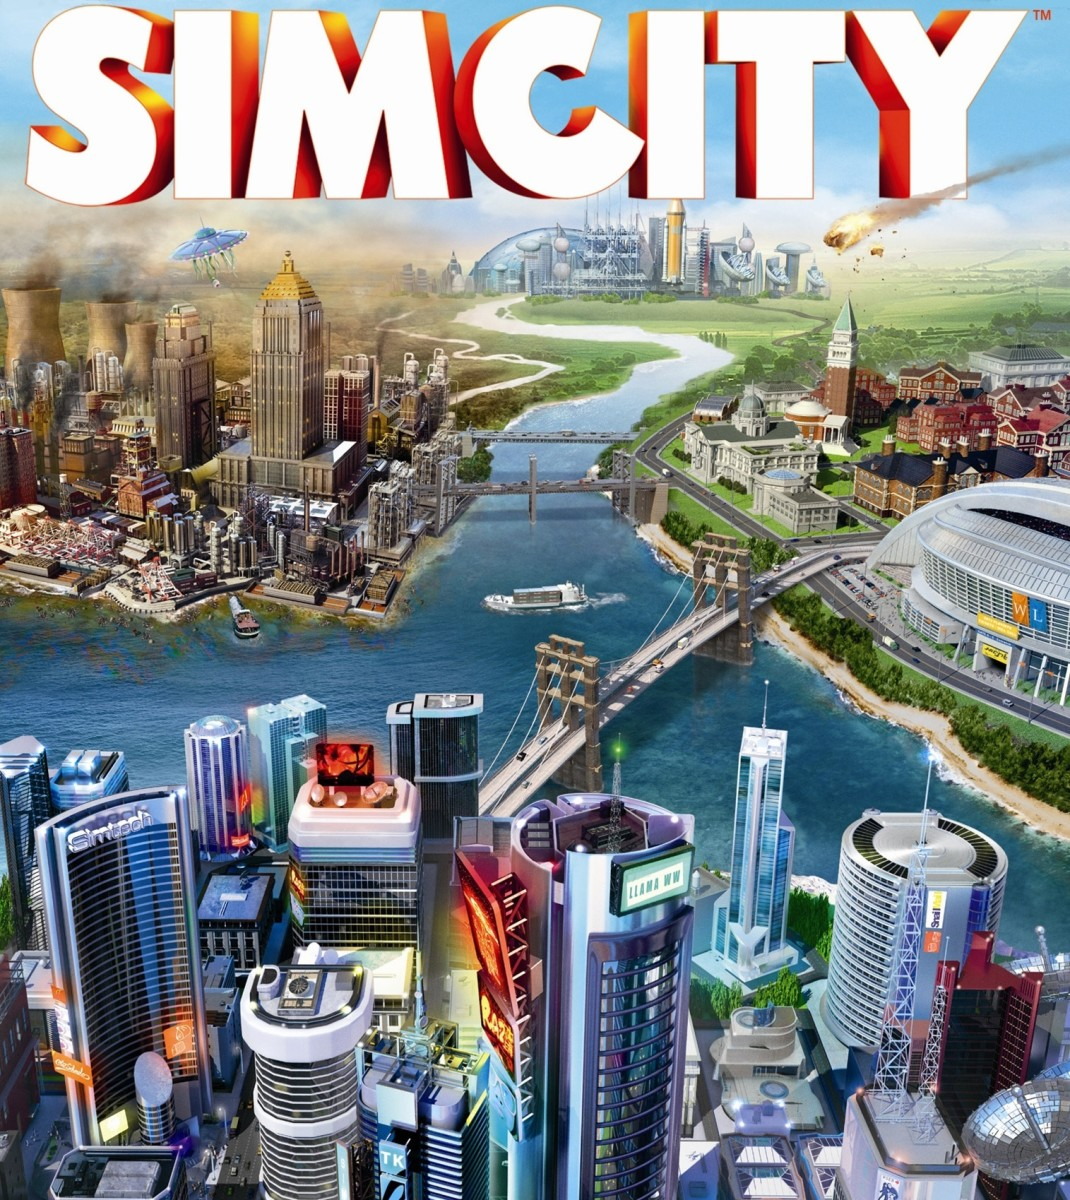 going-nowhere-fast-a-traffic-guide-for-simcity-2013